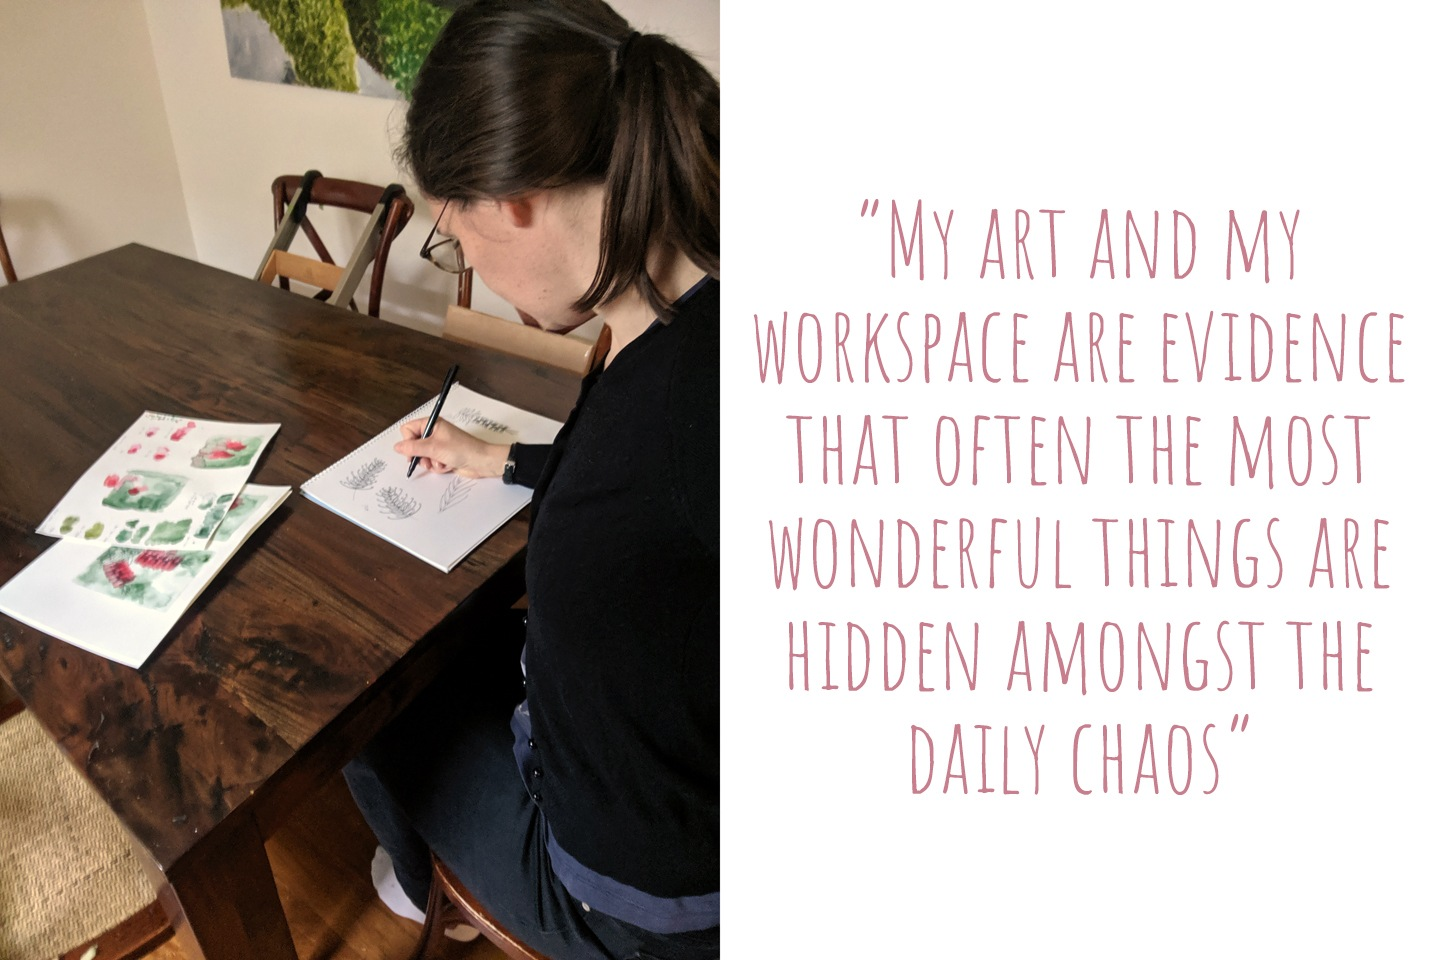 Kirby practising drawing at her dining room table; 'My art and my workspace are evidence that often the most wonderful things are hidden amongst the daily chaos'